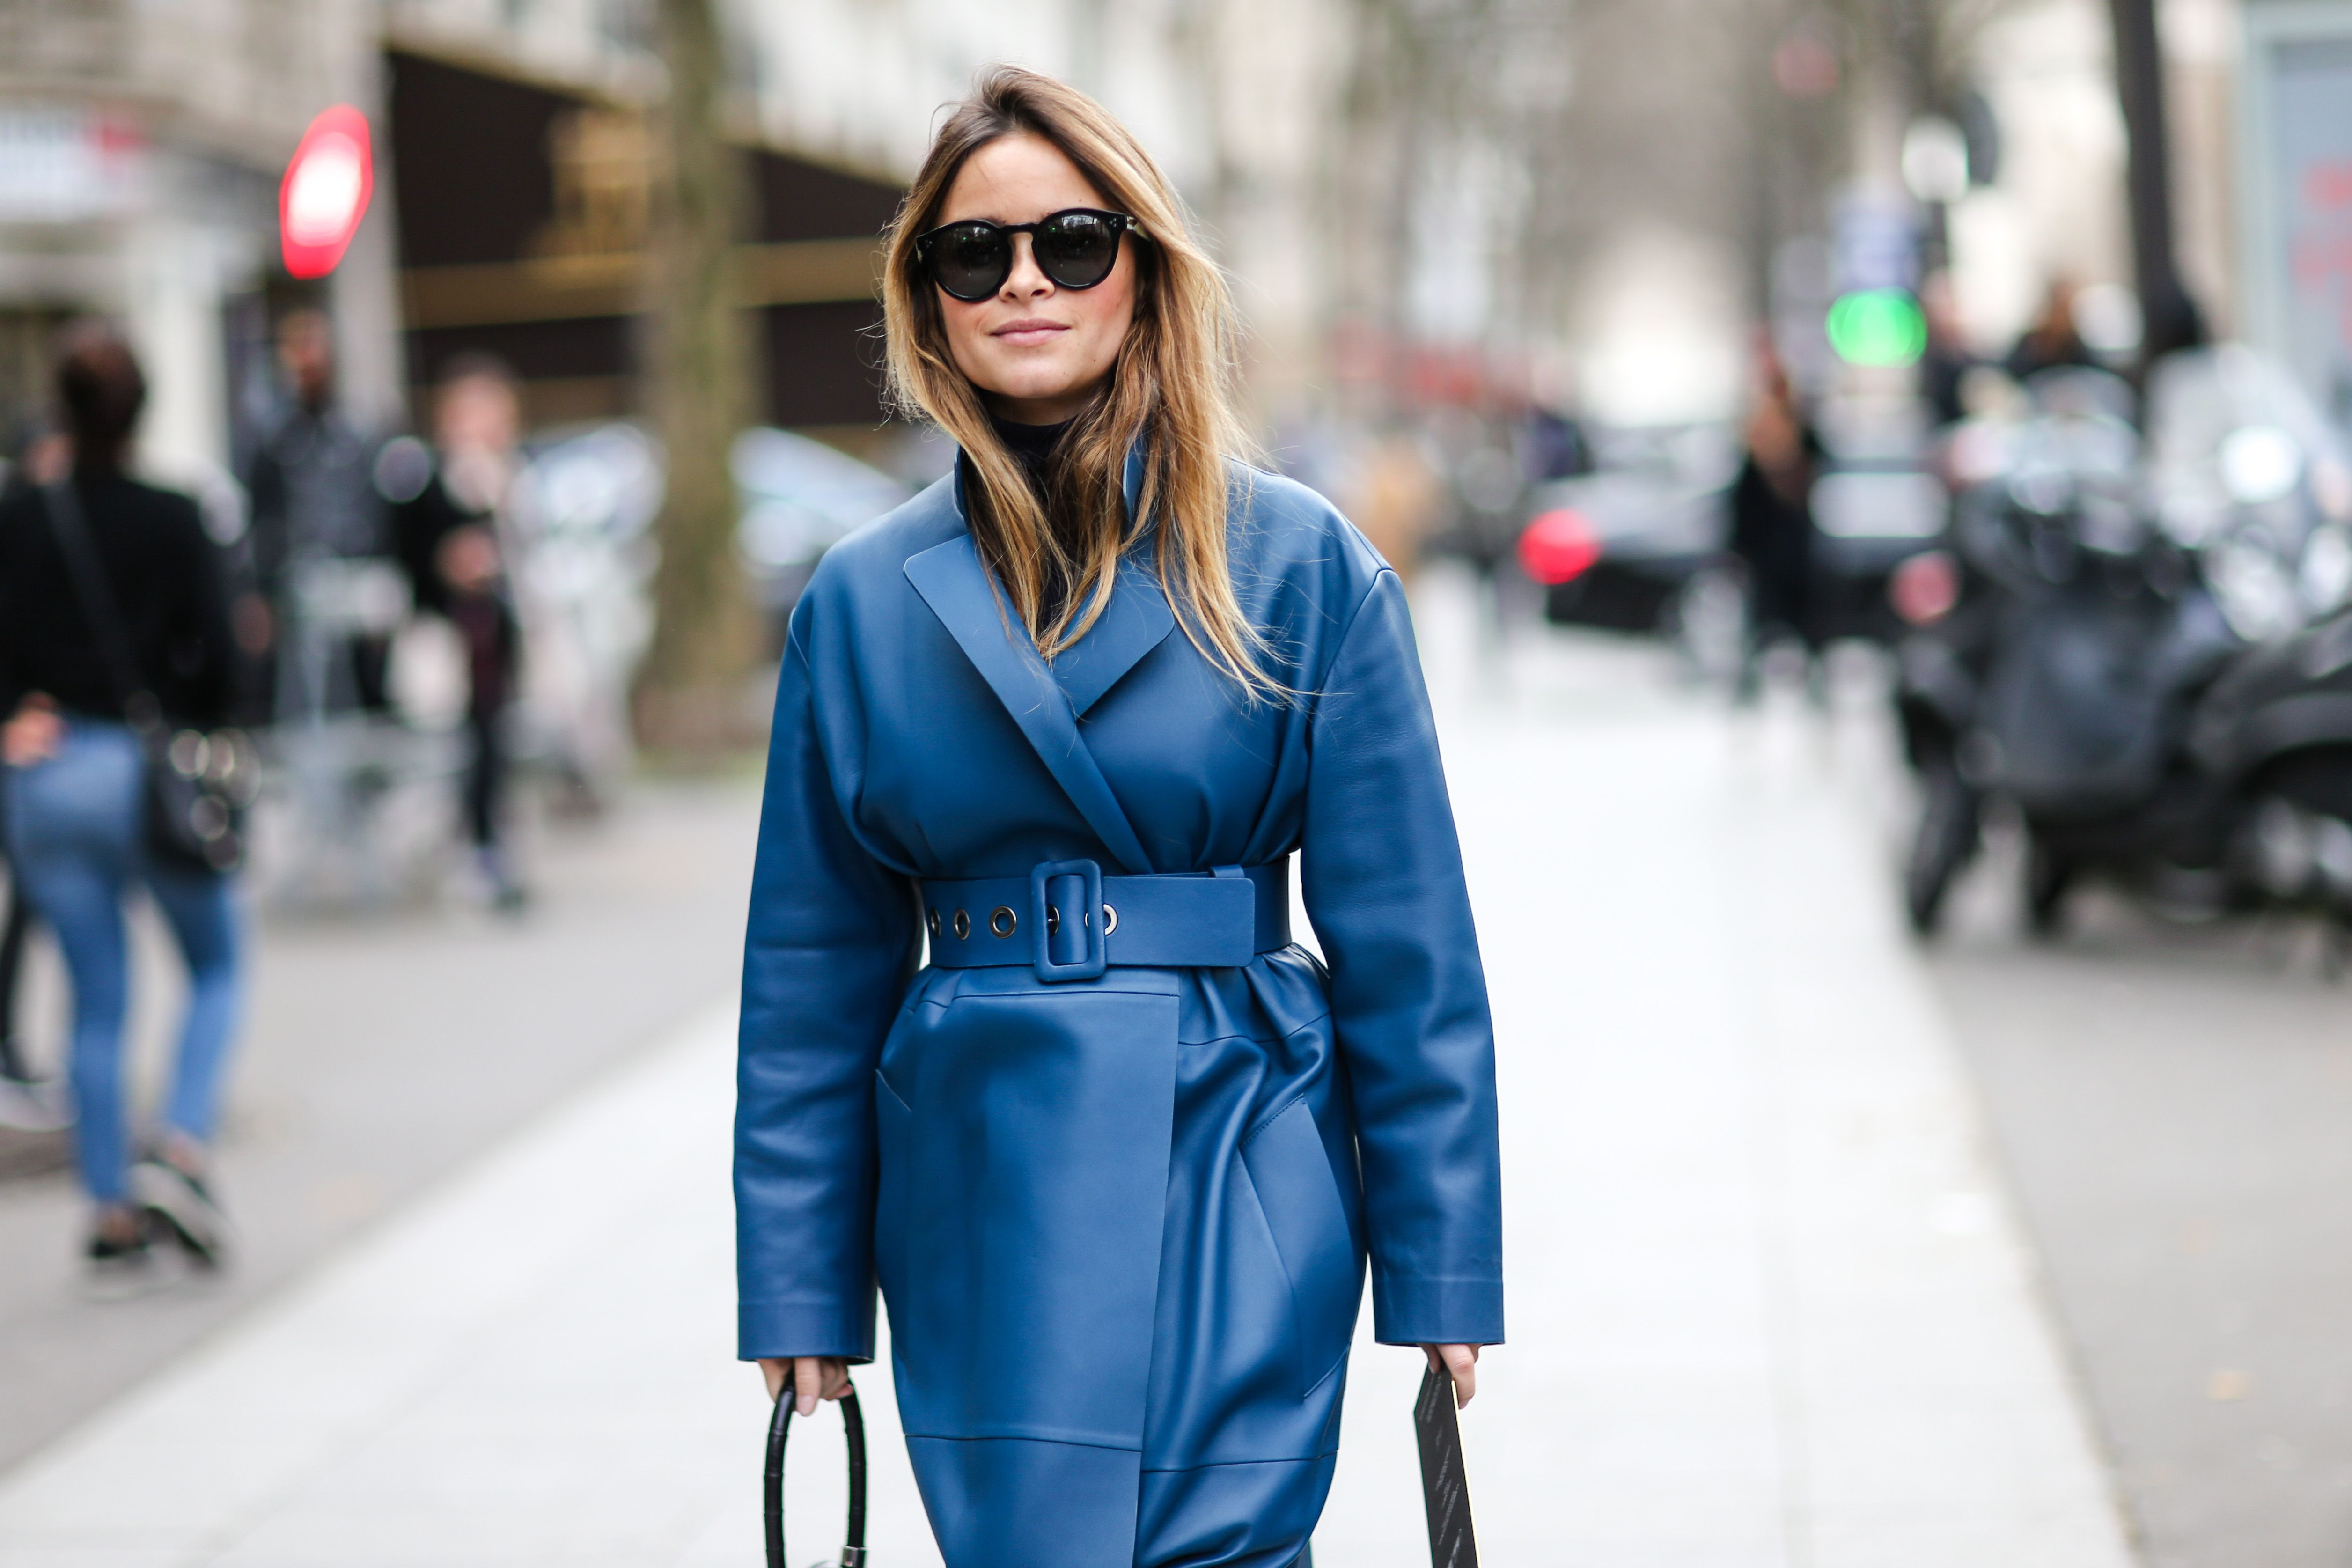 Fashion Influencer Miroslava Duma Is Being Accused Of Fixing Trump Up With Russian Politician